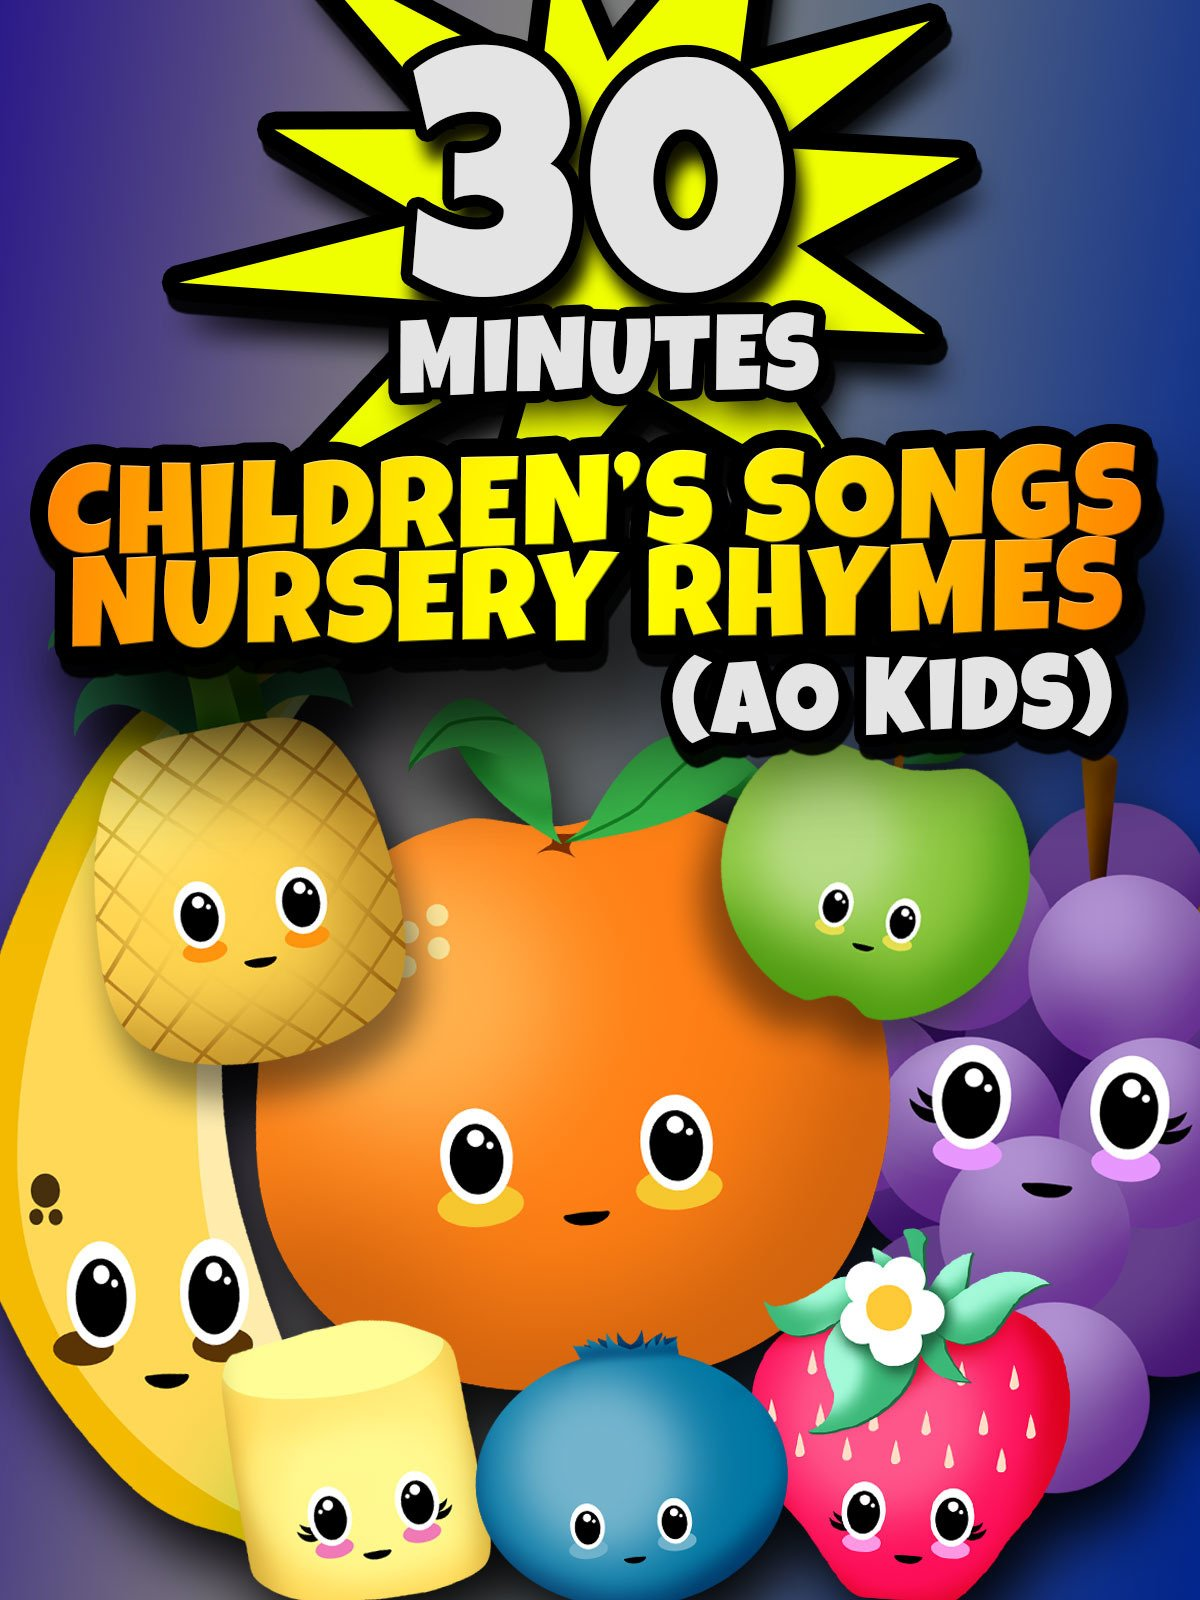 30 Minutes of Children's Songs and Nursery Rhymes | AO Kids